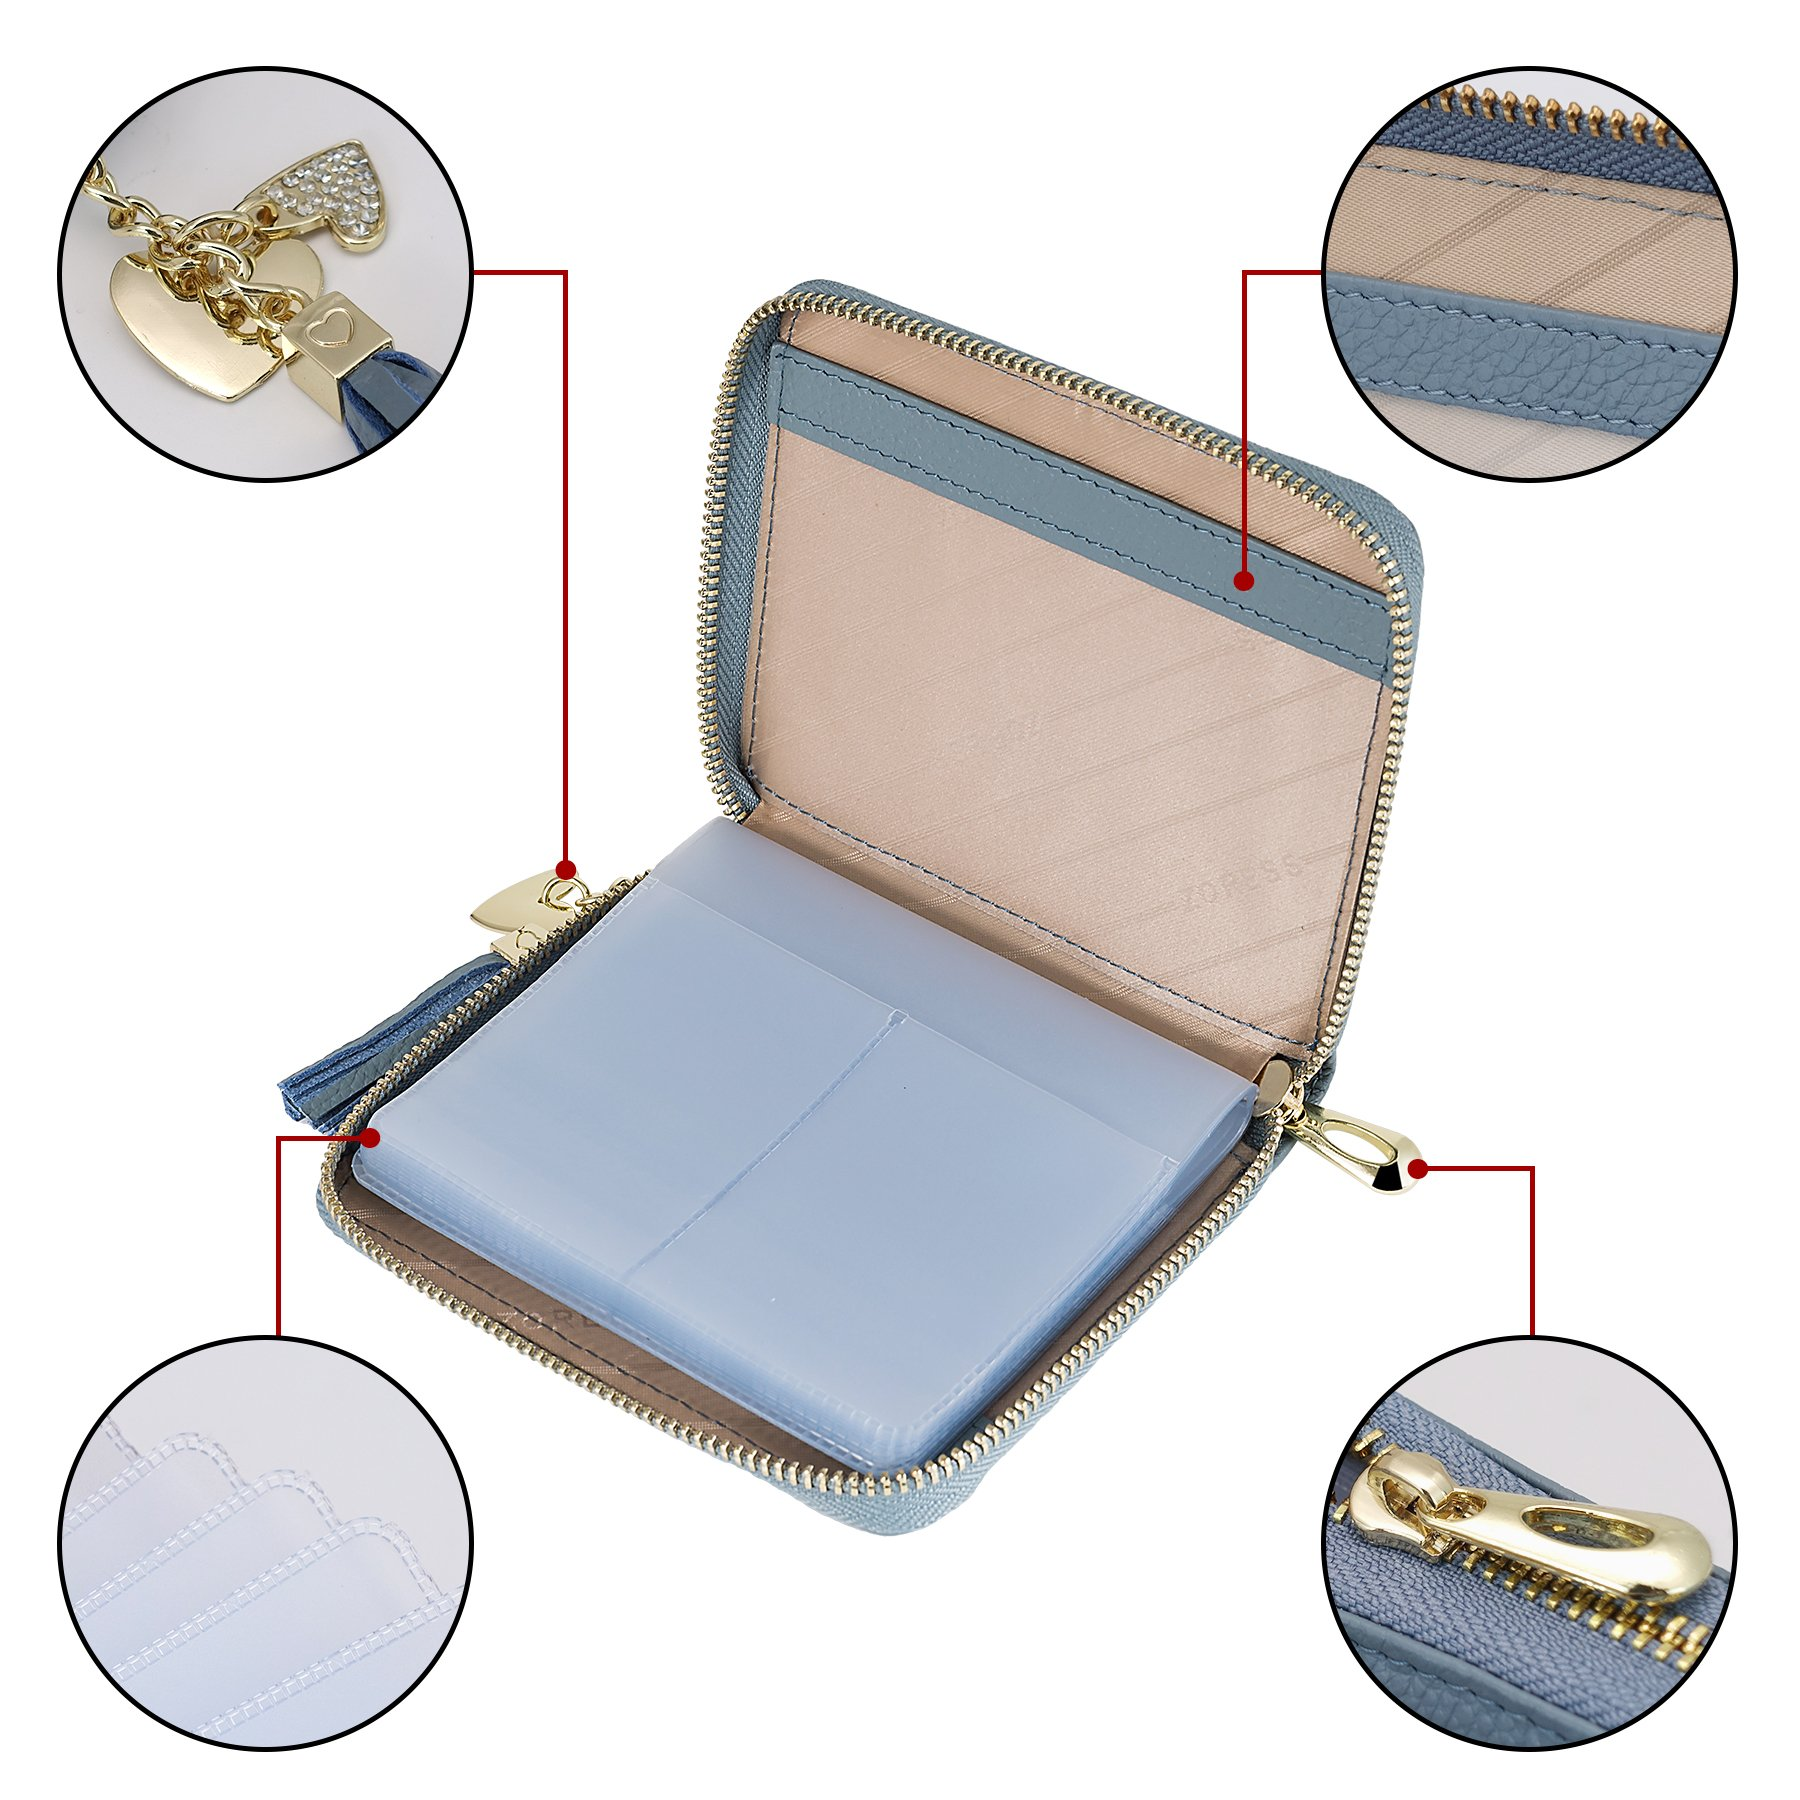 SafeCard 40 Card Solts Women's Credit Card Case Wallet 2 ID Window and Zipper Card Holder (40 Card Blue) by ZORESS (Image #6)